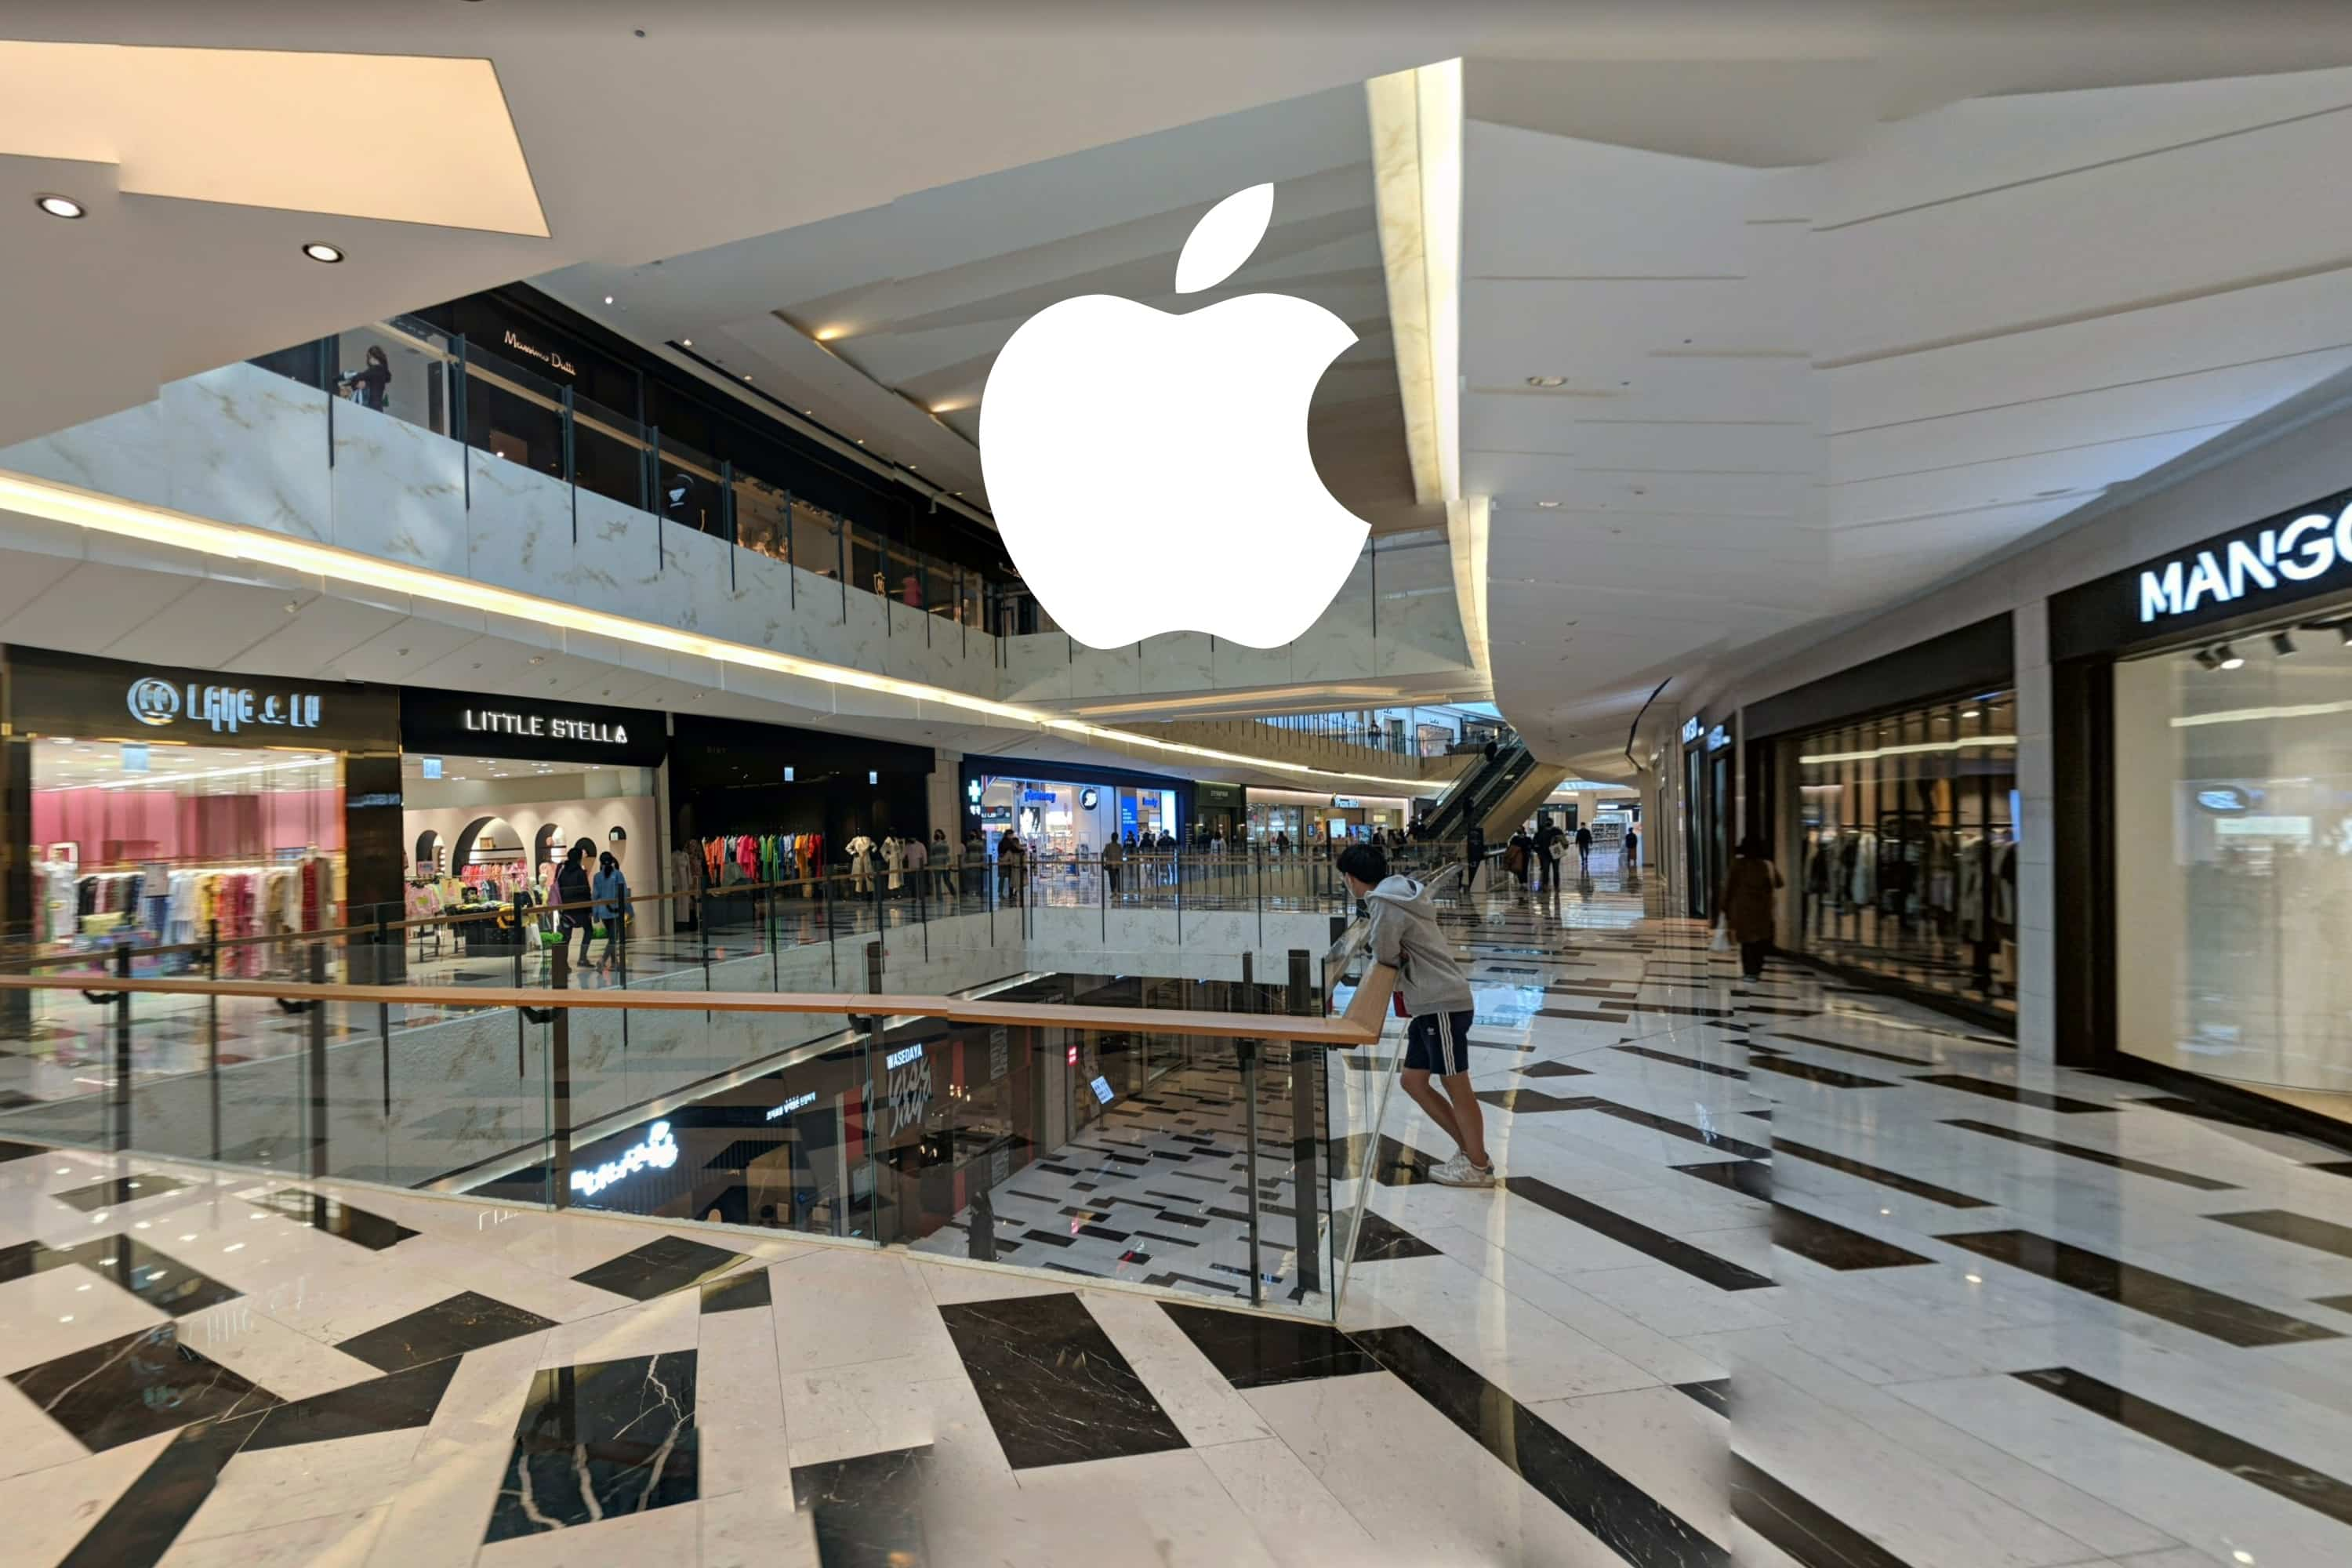 south-korea-s-2nd-apple-store-set-to-open-soon-20201130-1